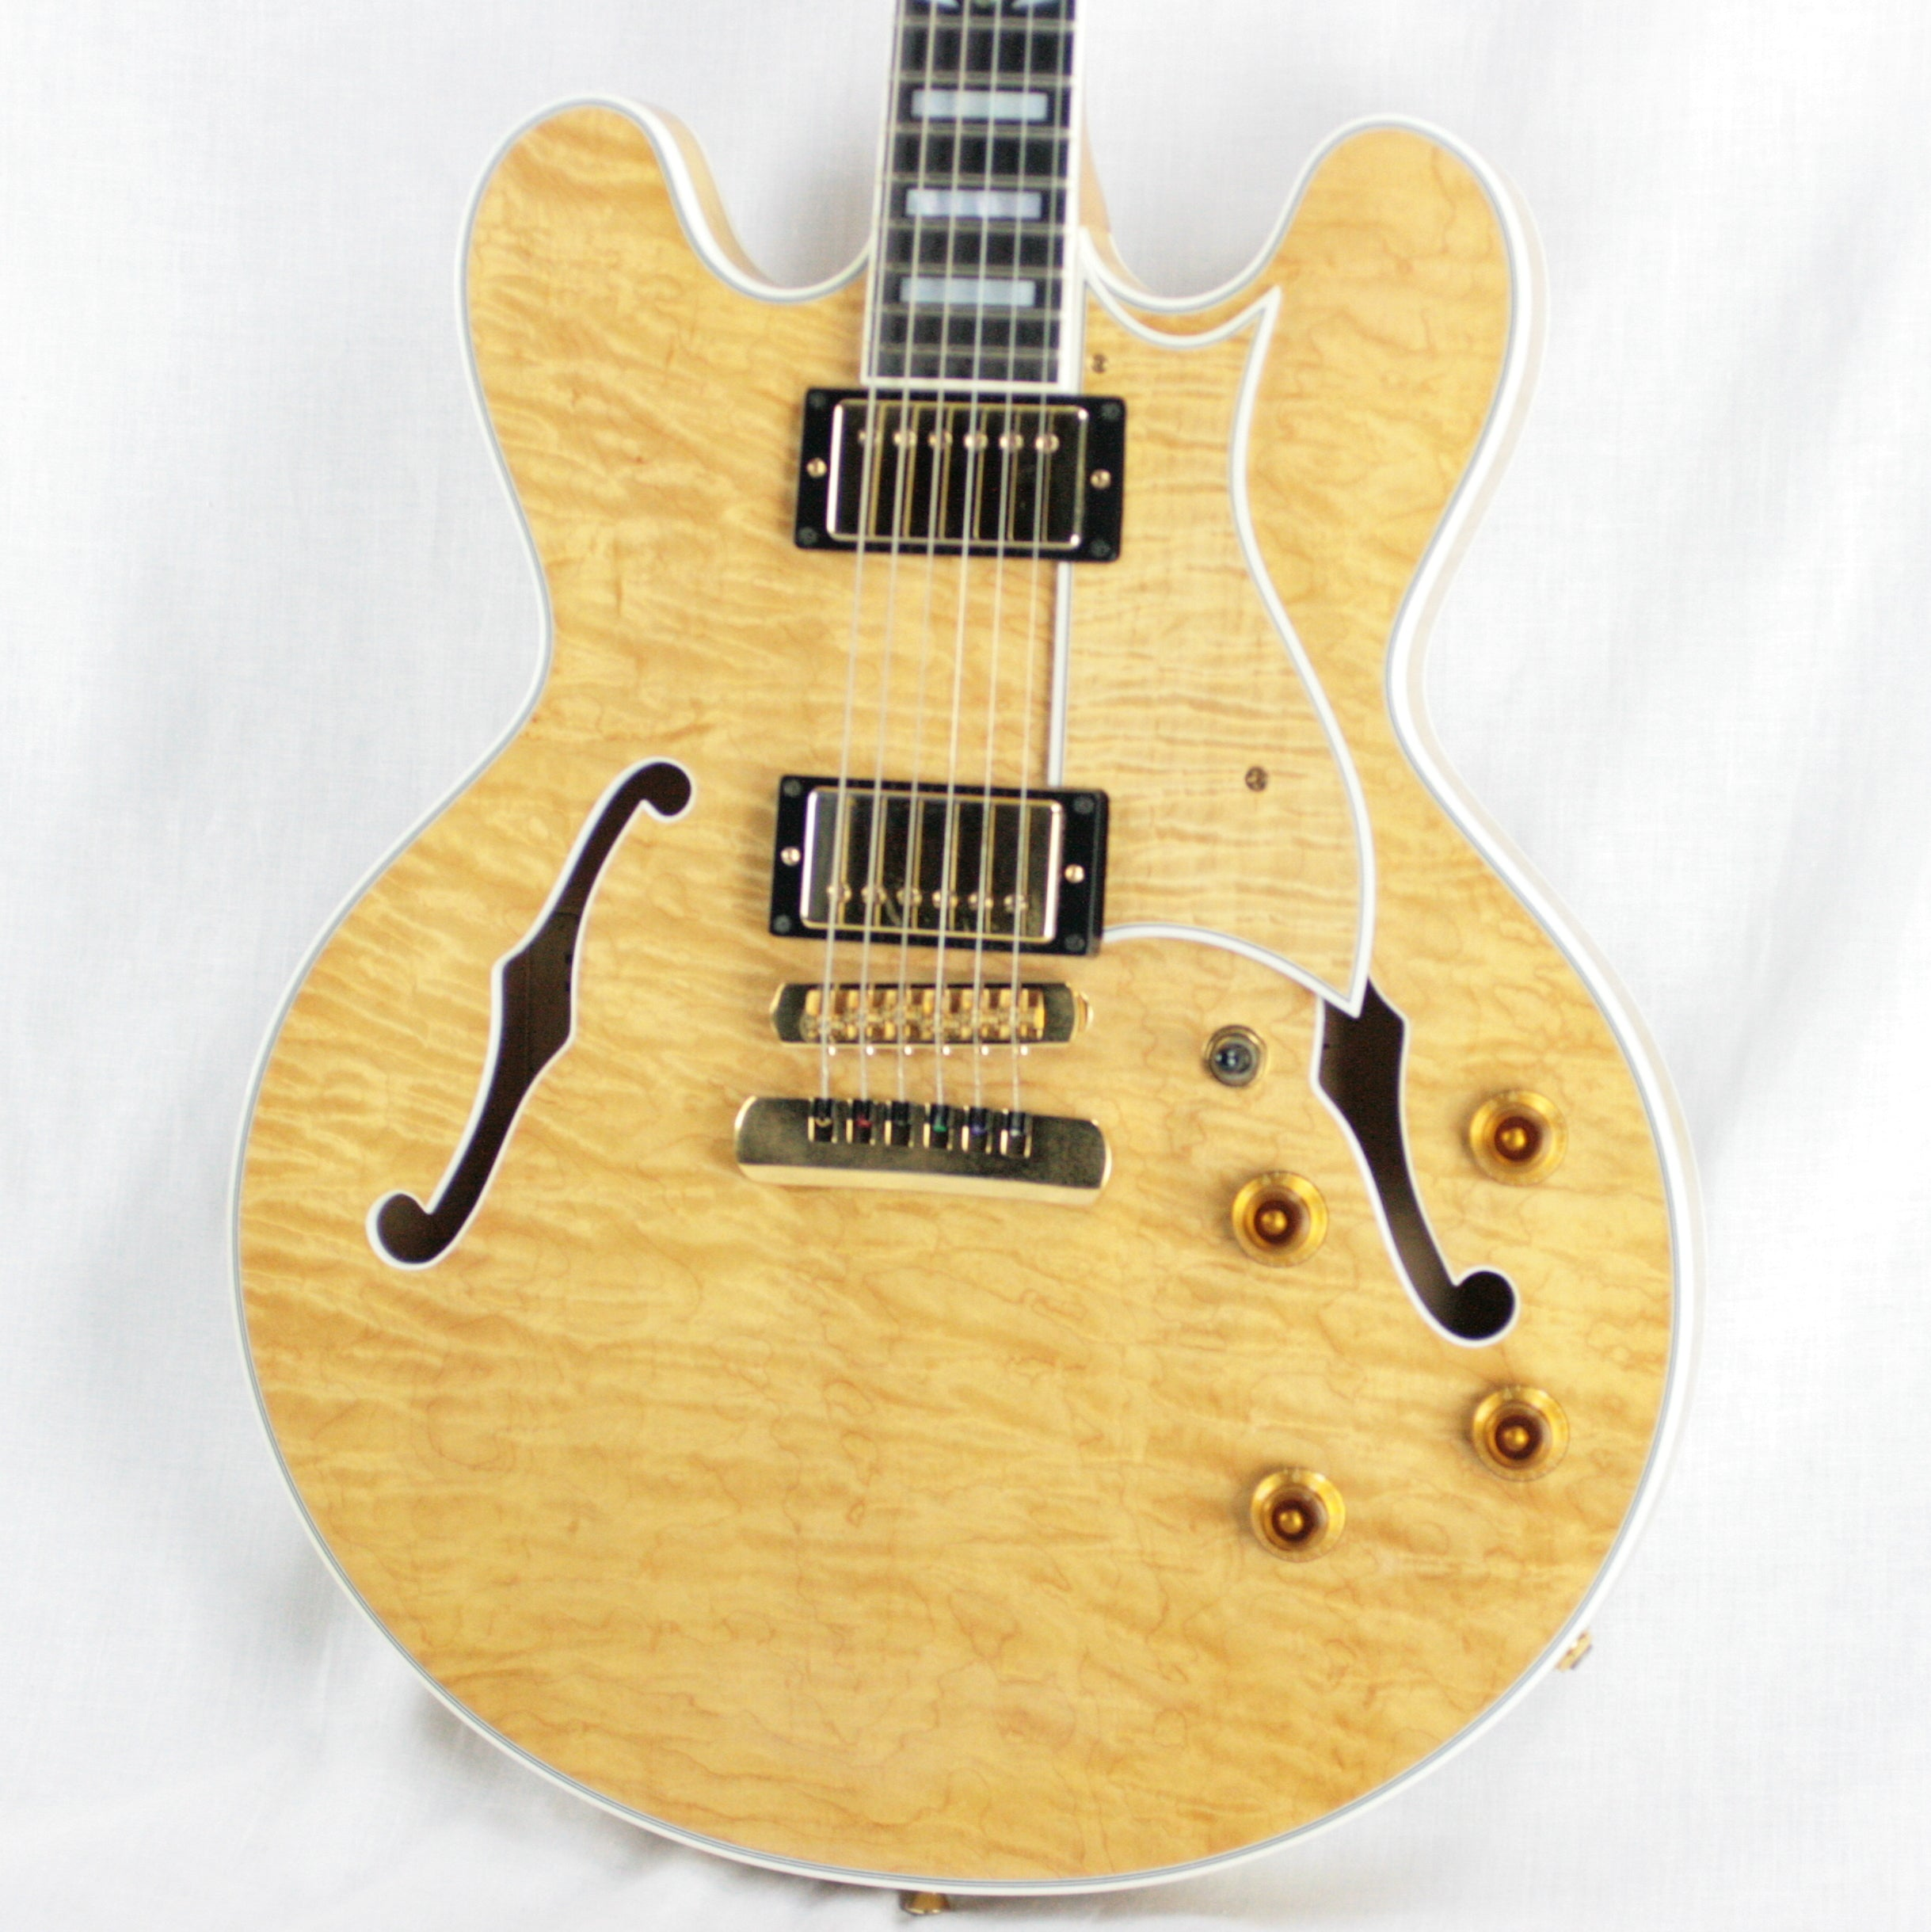 FLAME! 1996 Heritage H-555 Antique Natural Semi-Hollowbody Guitar! Made in USA Kalamazoo Factory!